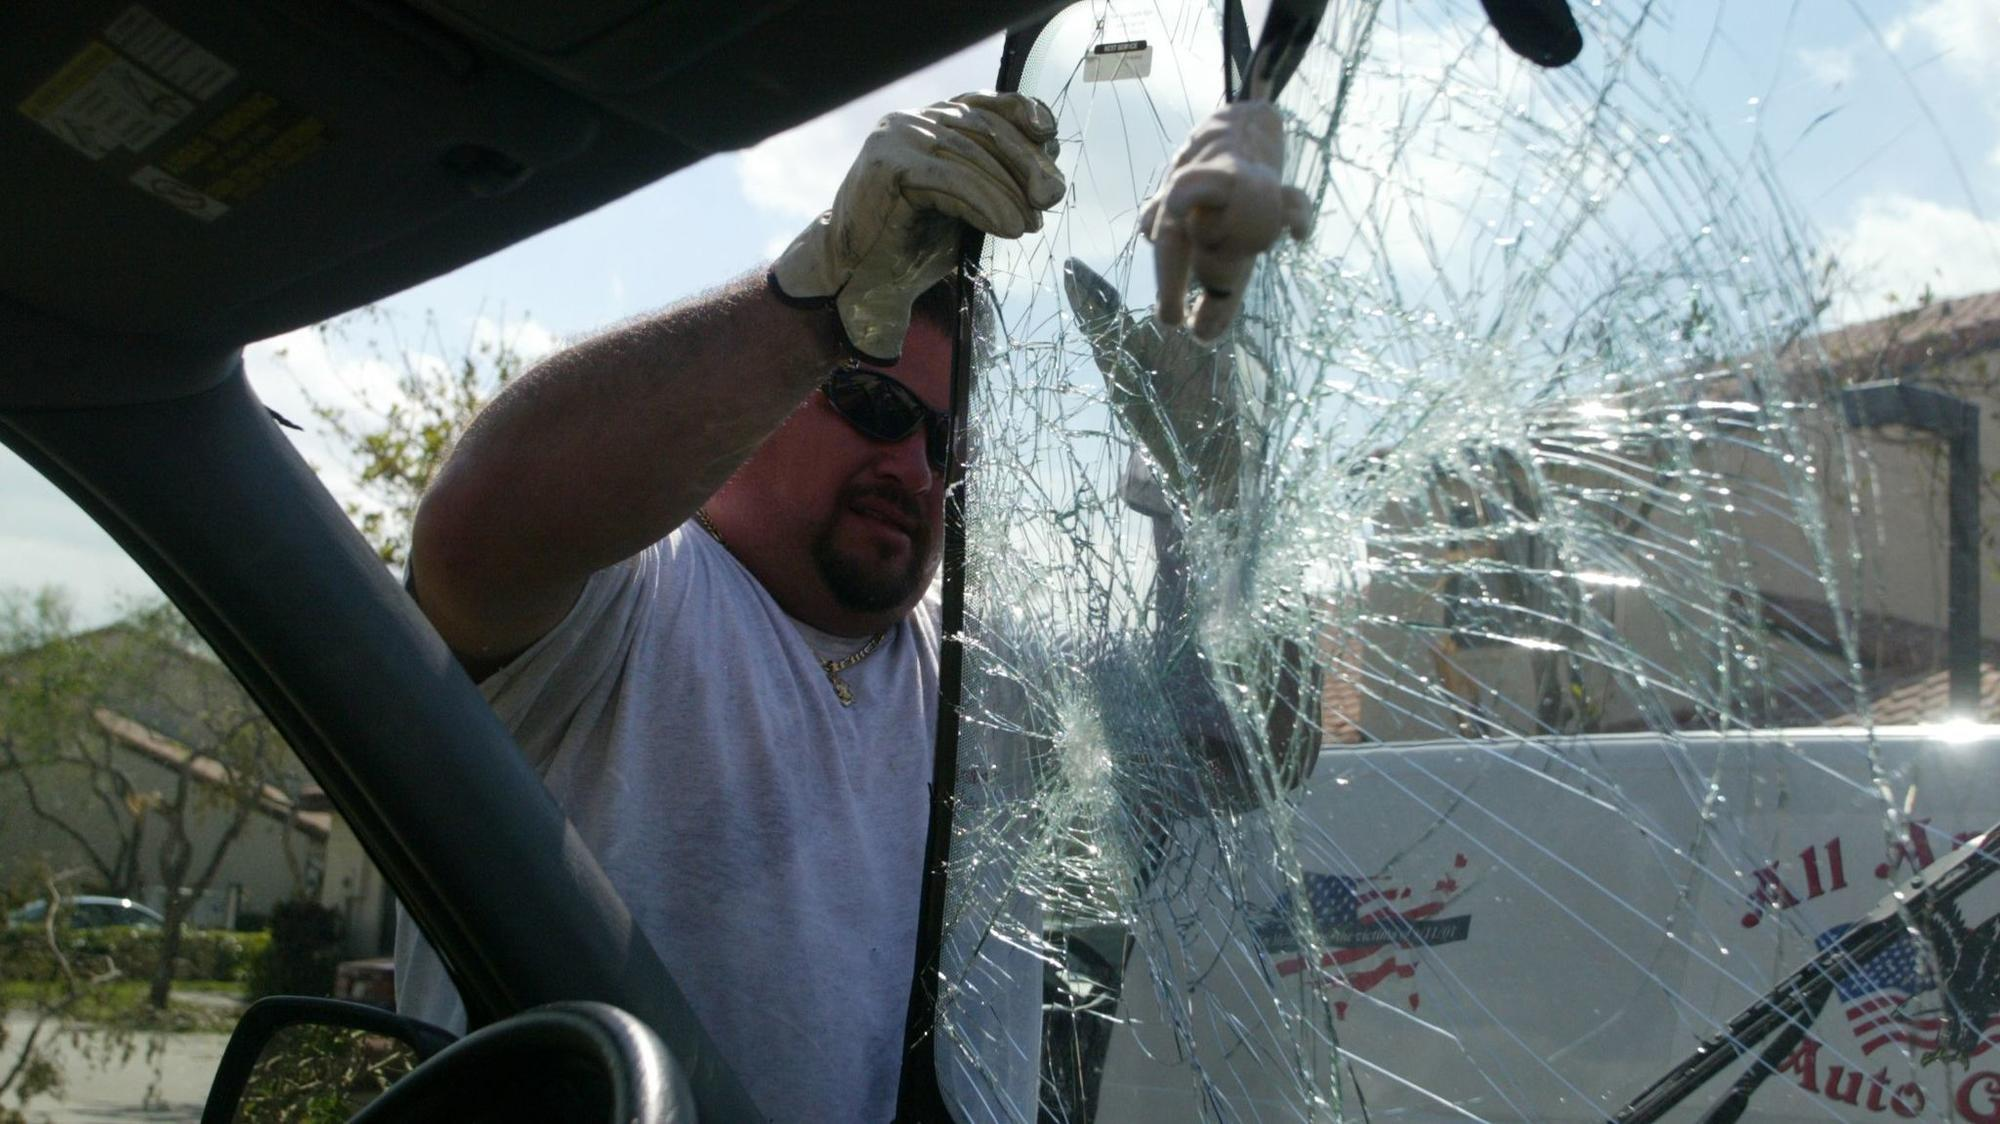 Windshield Replacement Anti Fraud Proposal Clears First